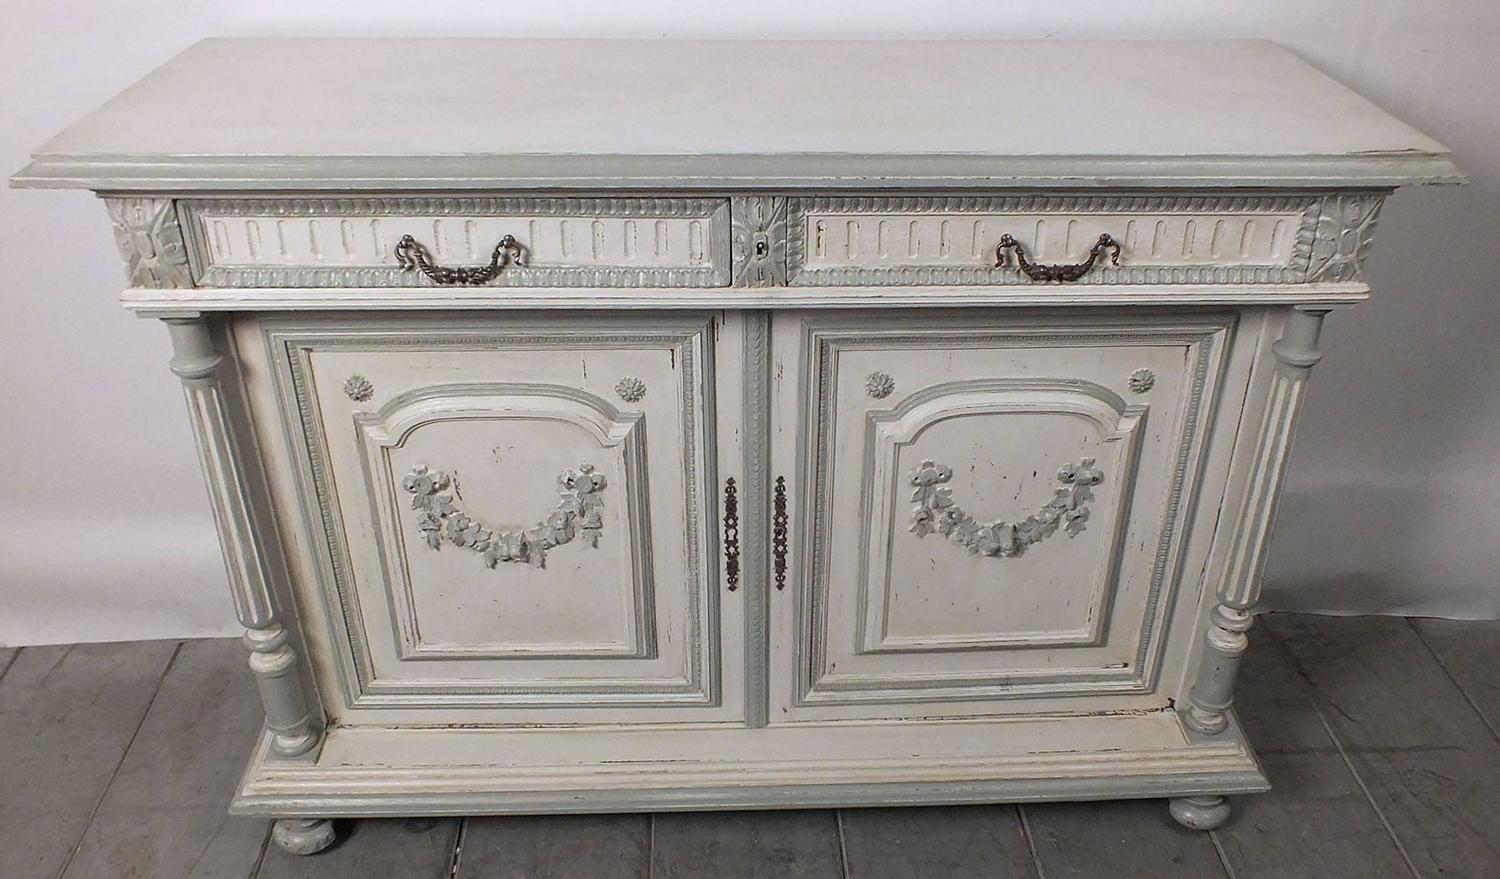 19th century french painted sideboard or buffet at 1stdibs for Painted buffet sideboard